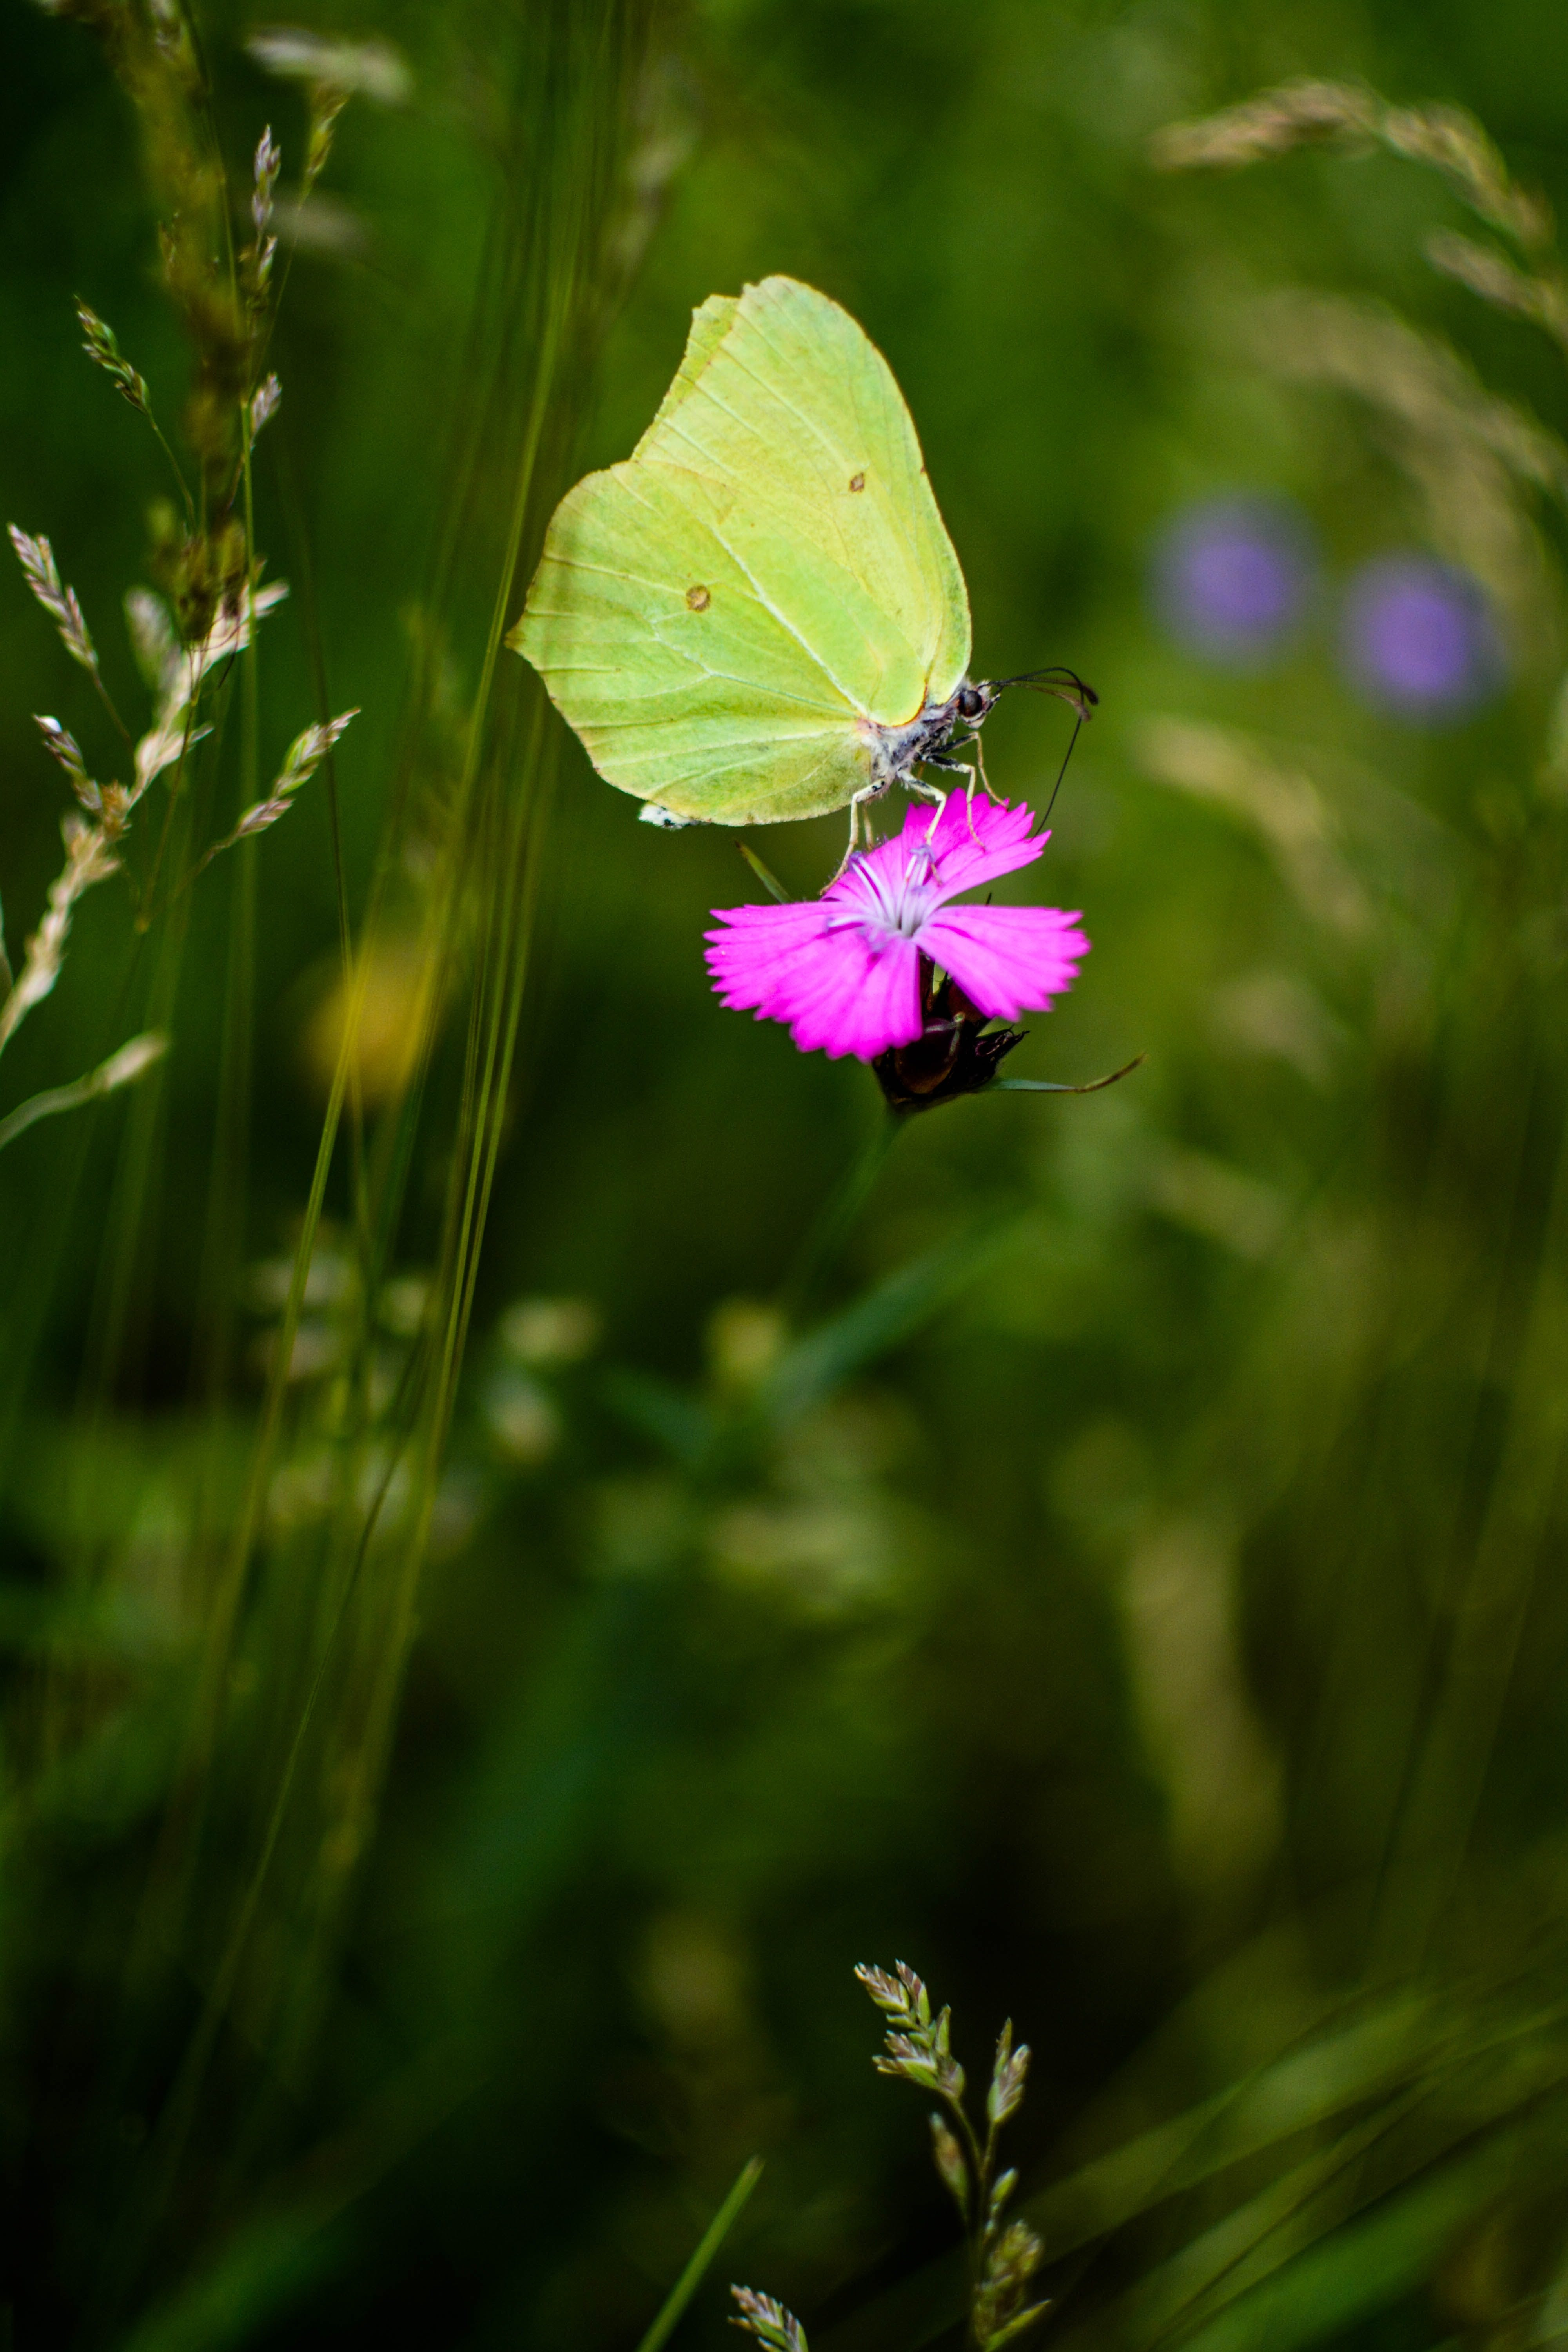 Yellow Surfer Butterfly Perched on Pink Petaled Flower